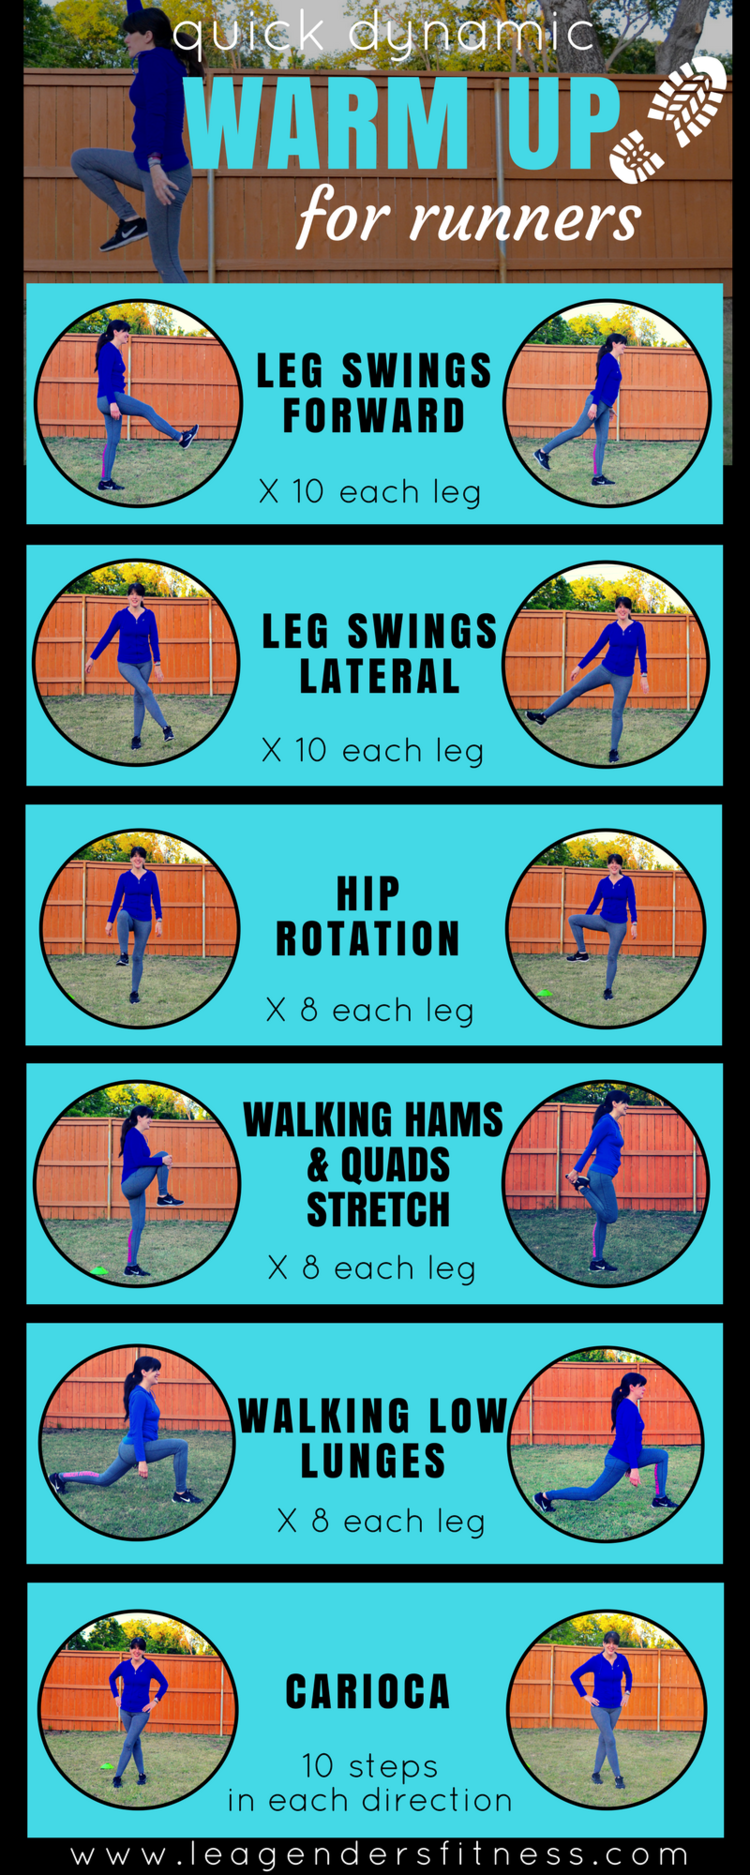 Quick dynamic warmup for runners